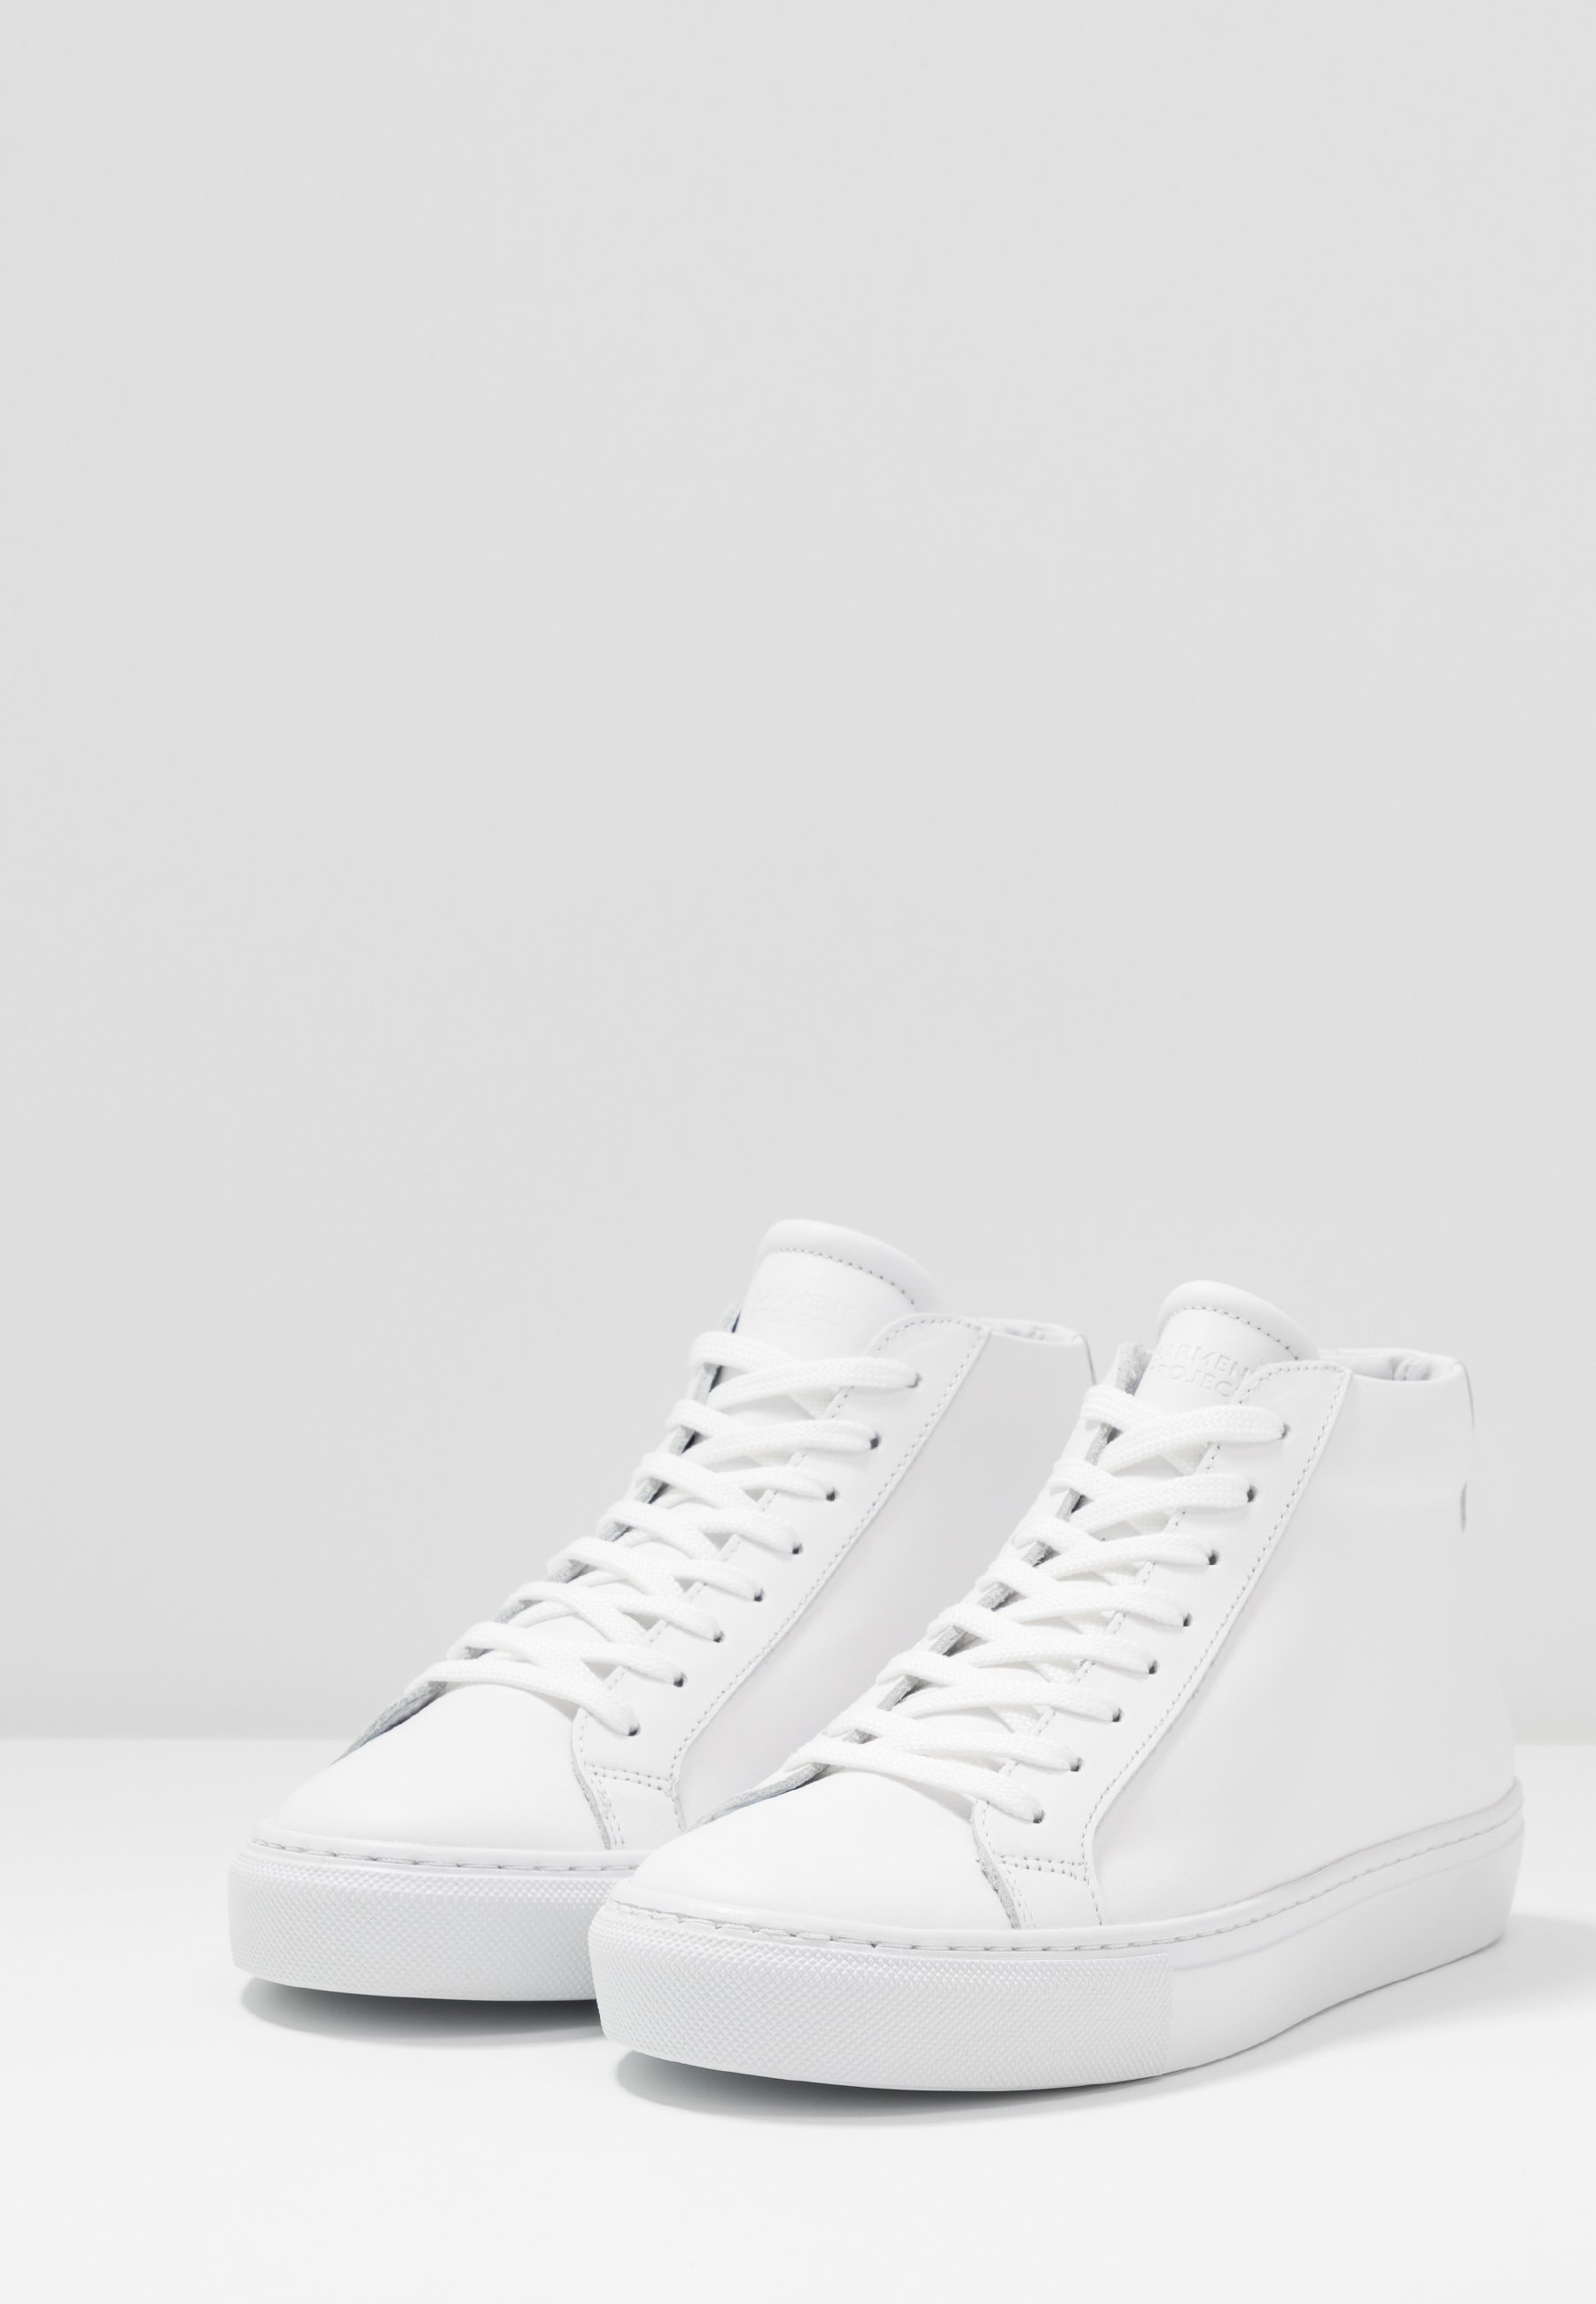 Garment Project Type Mid Slim Sole - Sneakers High White/light Grey